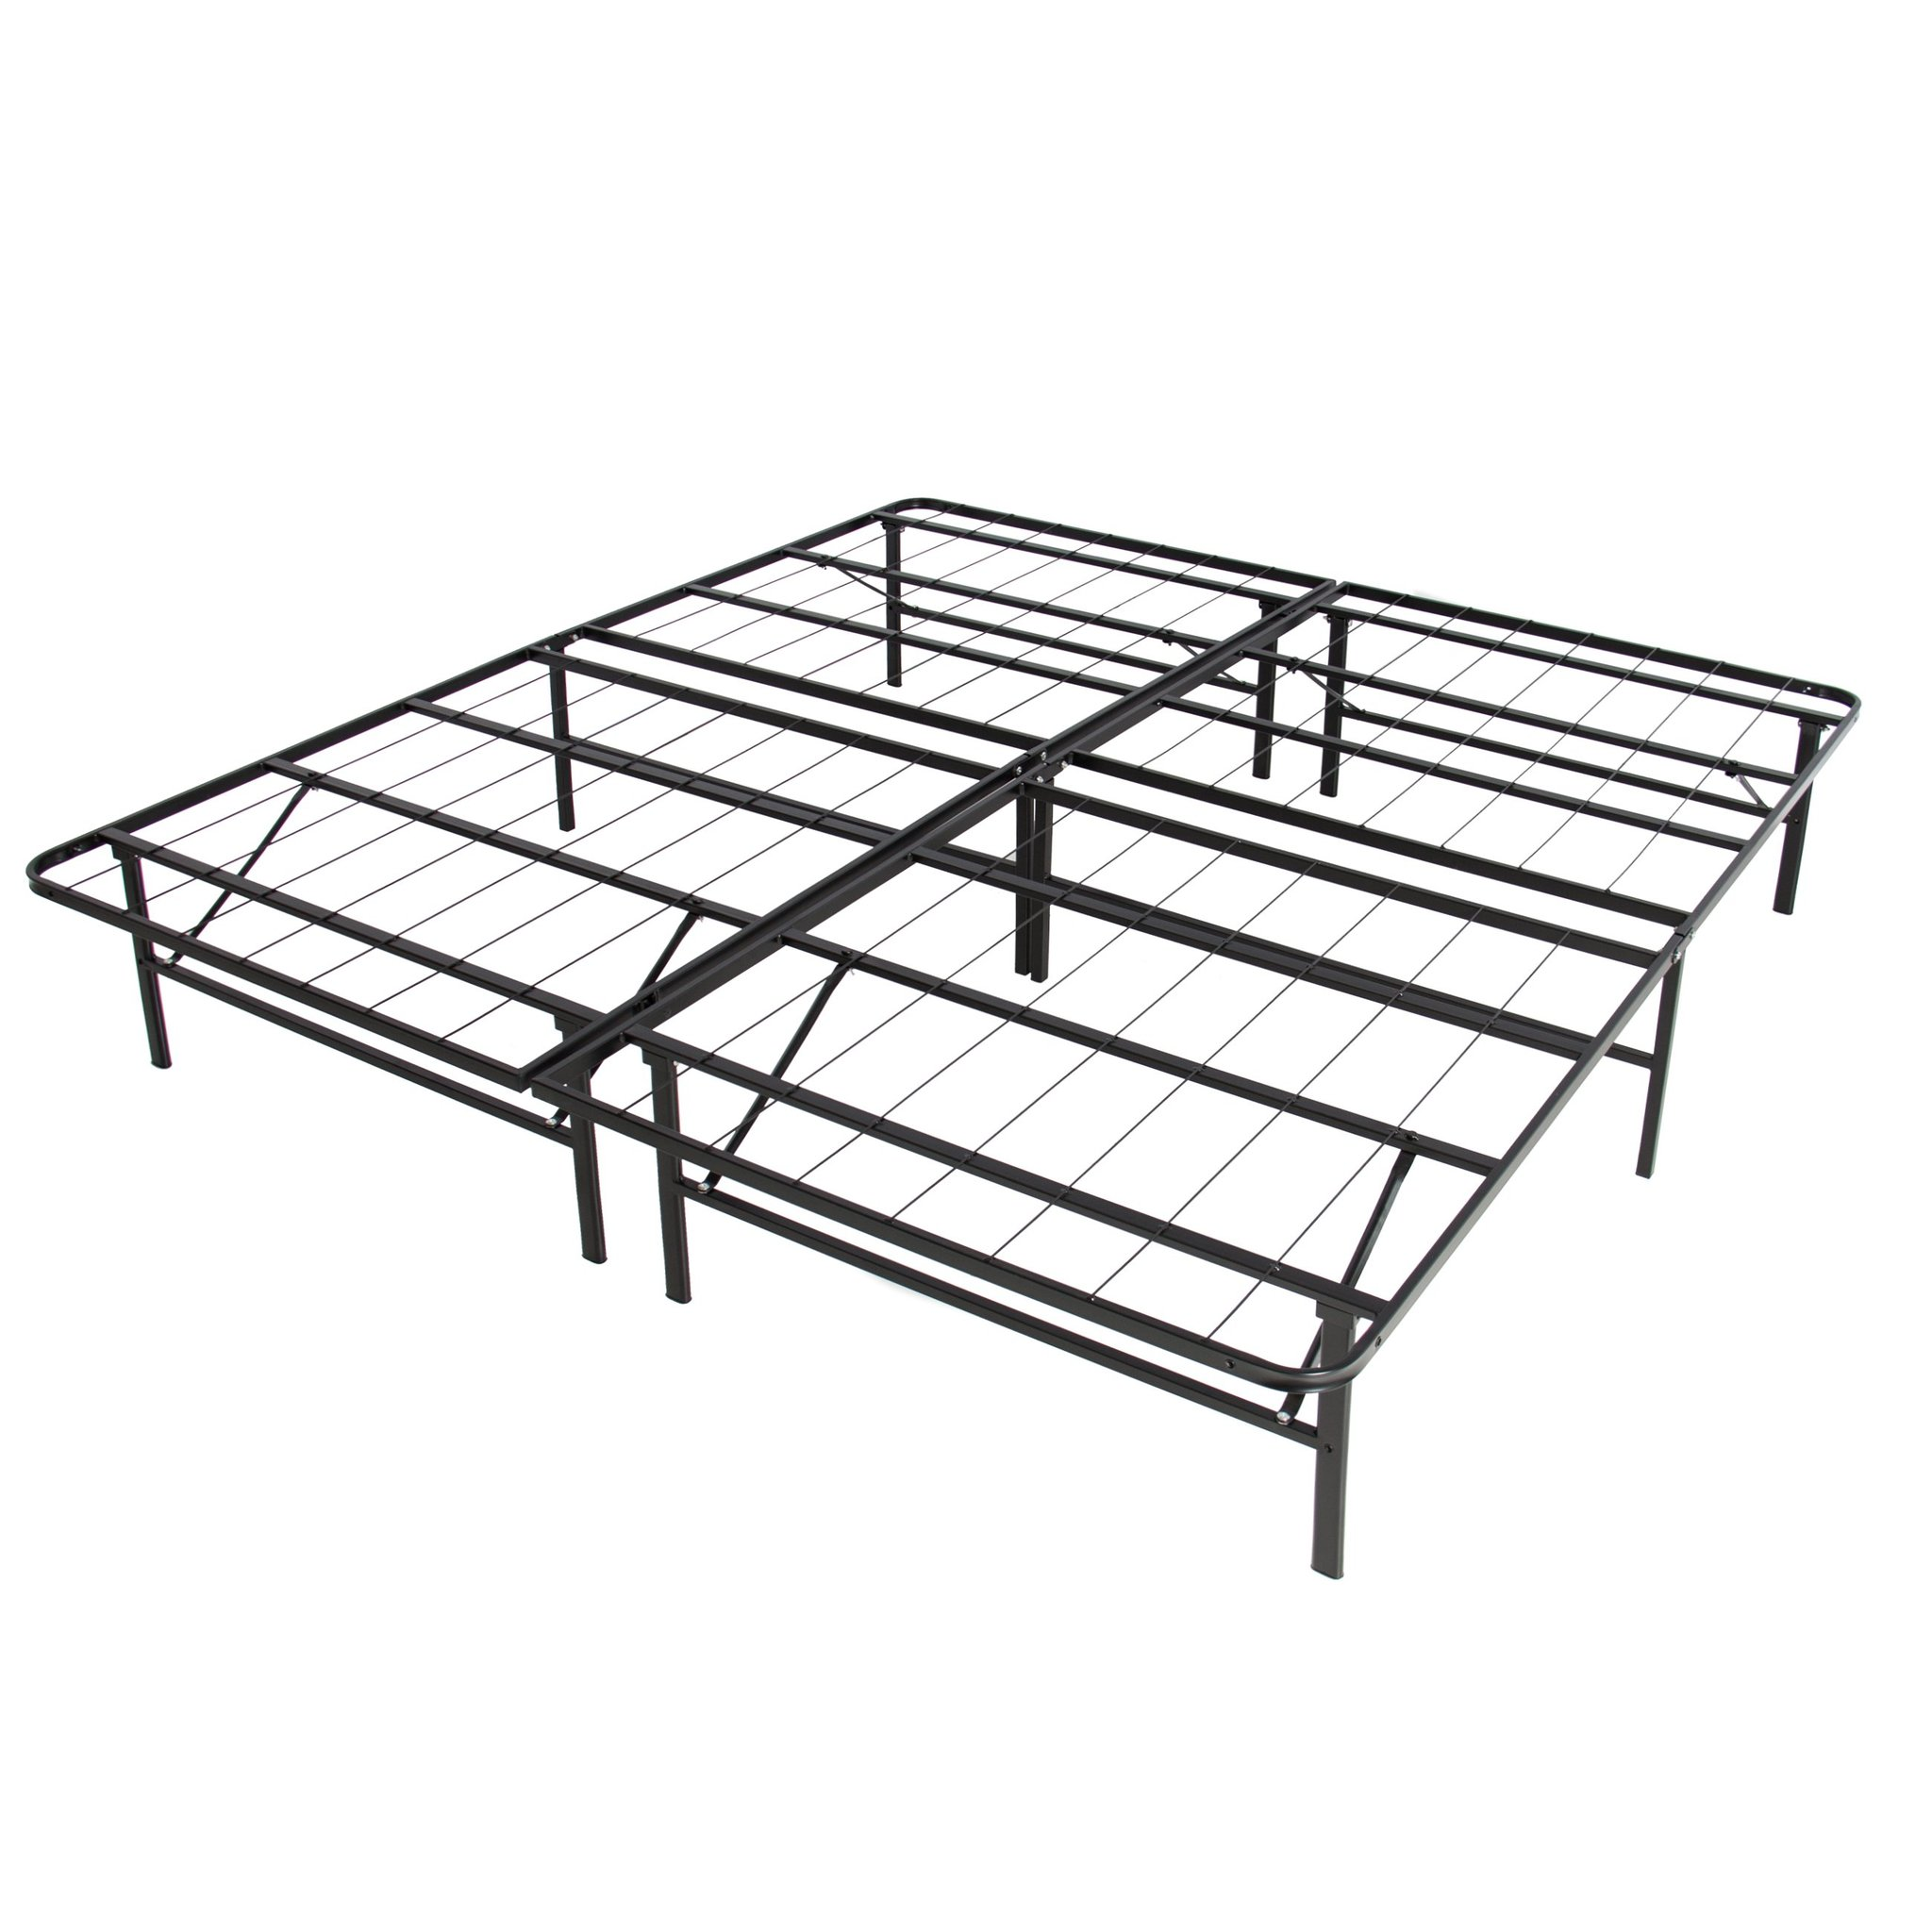 2048x2048 King Foldable Metal Bed Frame